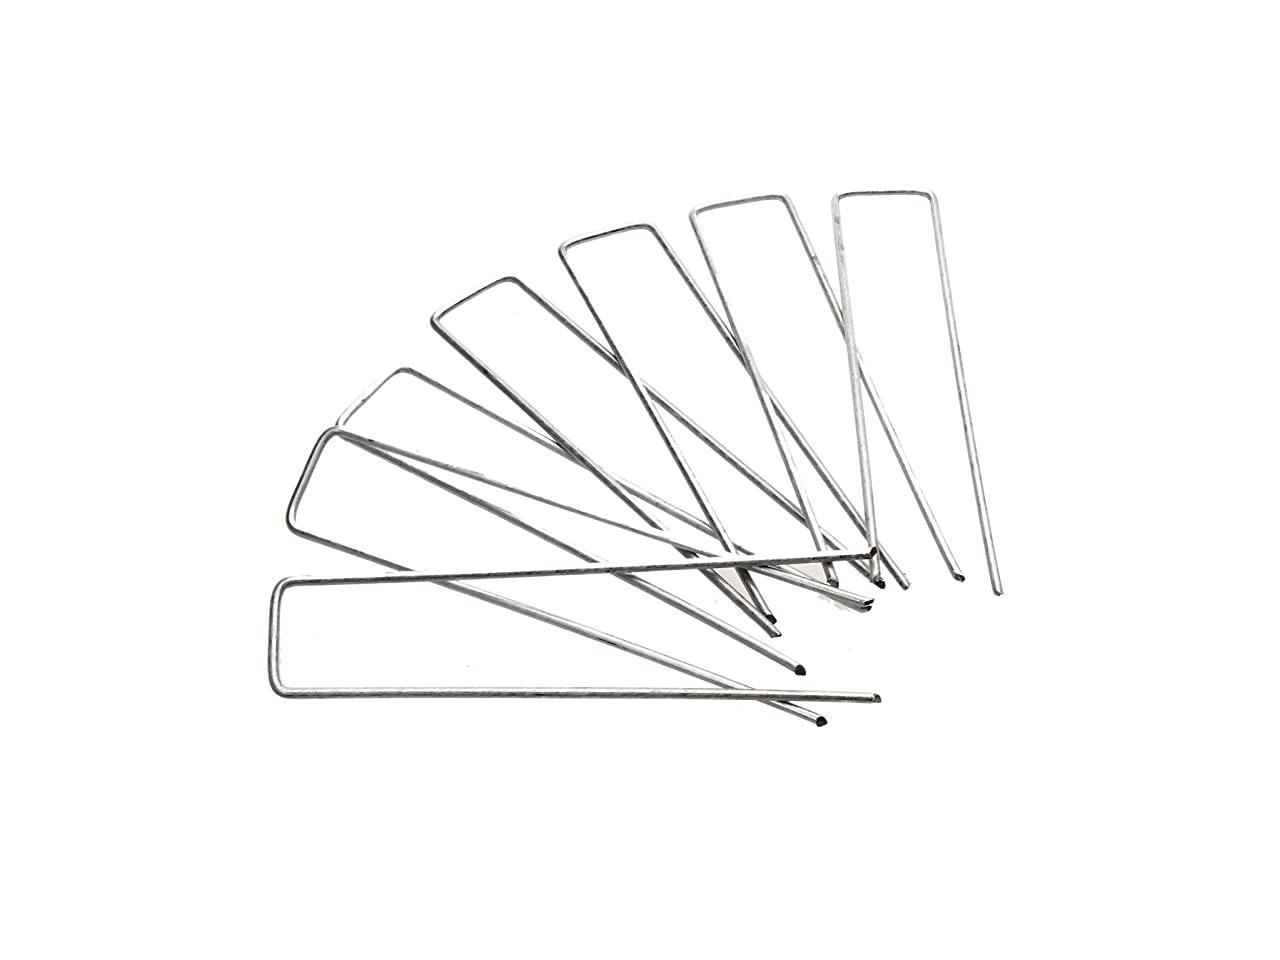 Galvanized Garden Stakes Landscape Staples And Fence Stake